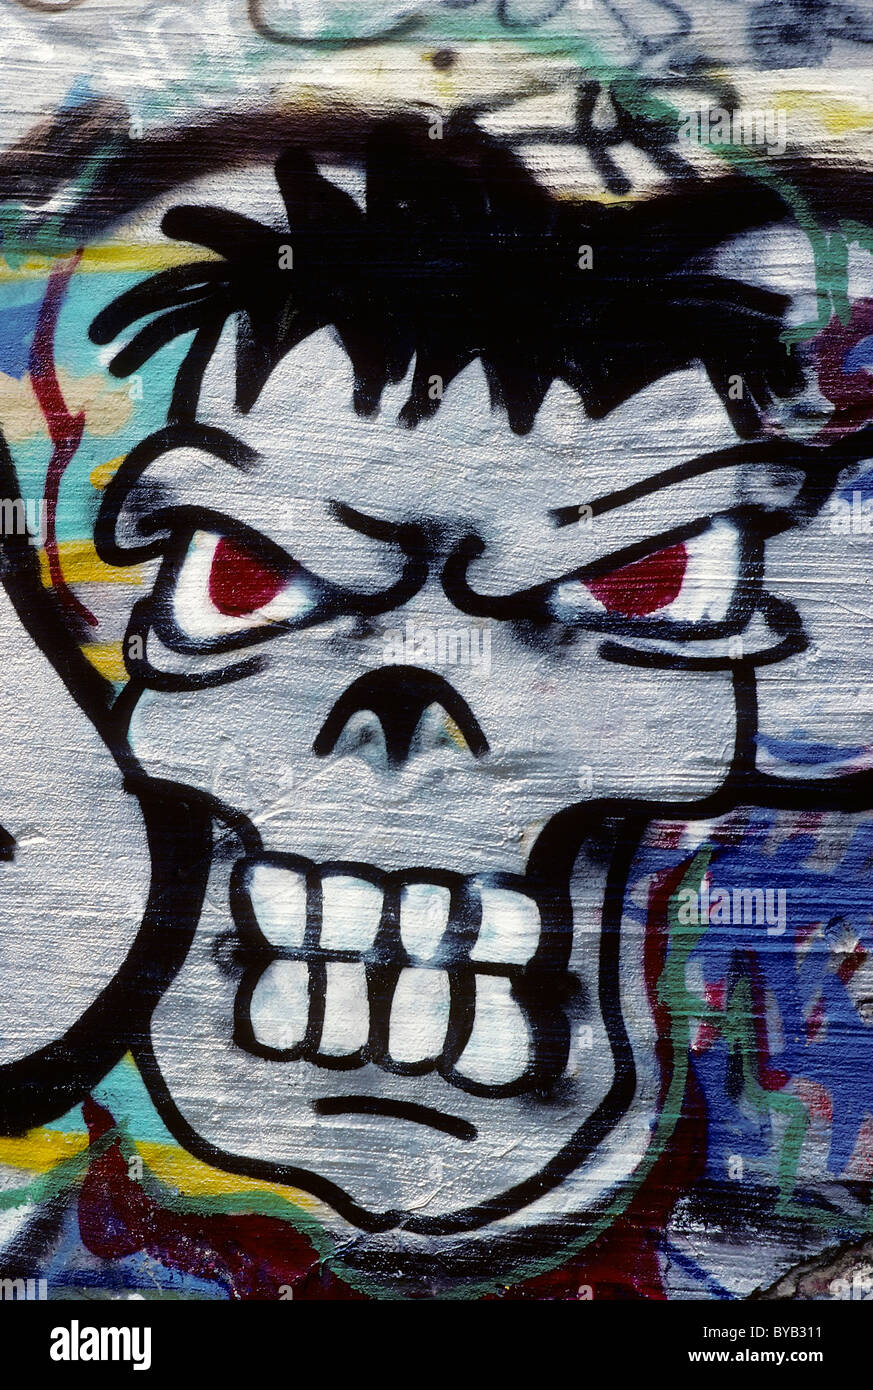 Grim face, looking aggressive with bared teeth, graffiti - Stock Image